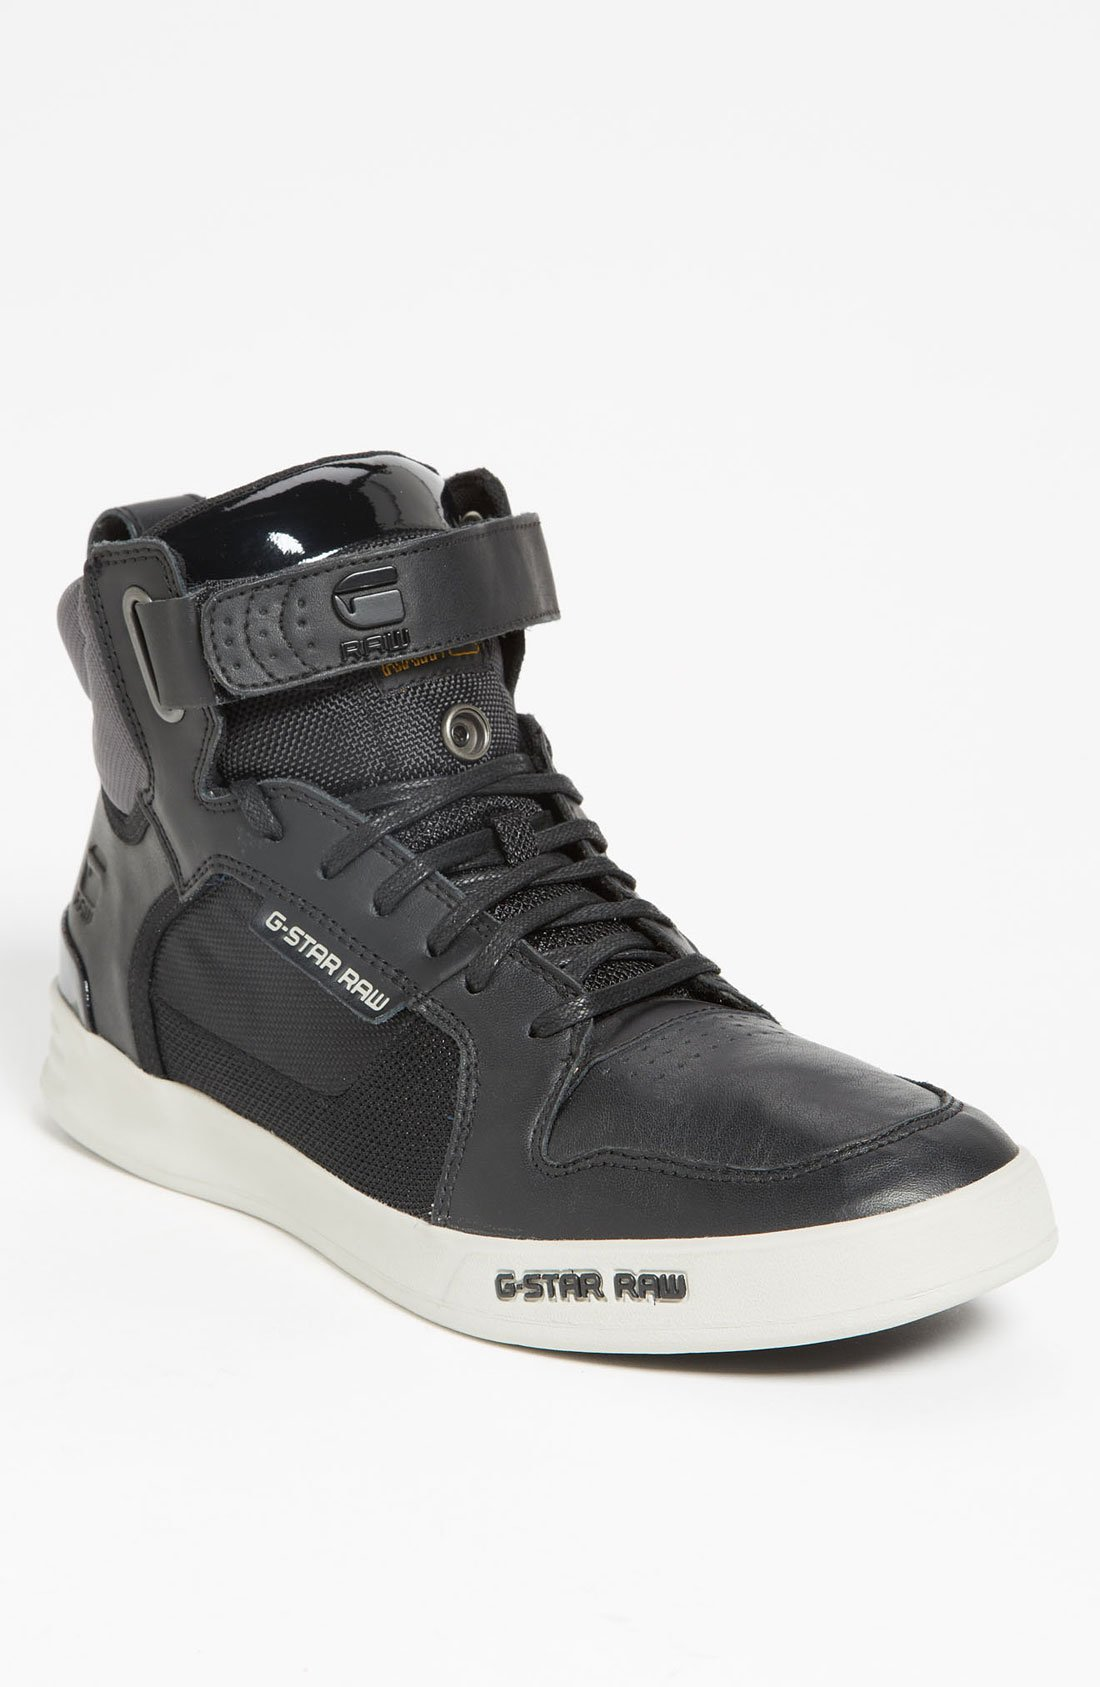 g star raw yard bullion sneaker men in gray for men lyst. Black Bedroom Furniture Sets. Home Design Ideas